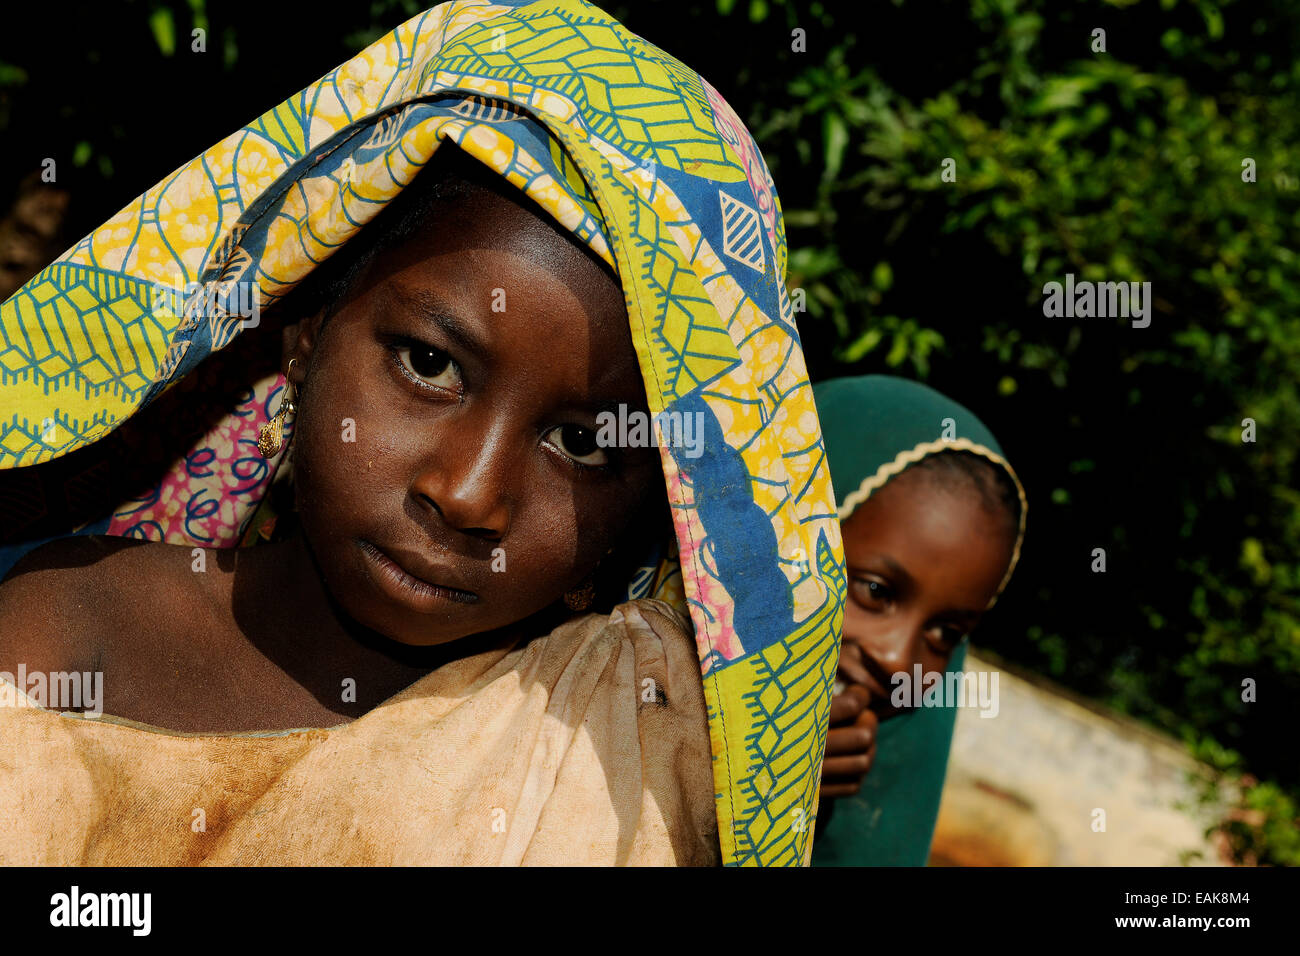 Young girl from the village of Idool, Idool, Adamawa Region, Cameroon Stock Photo